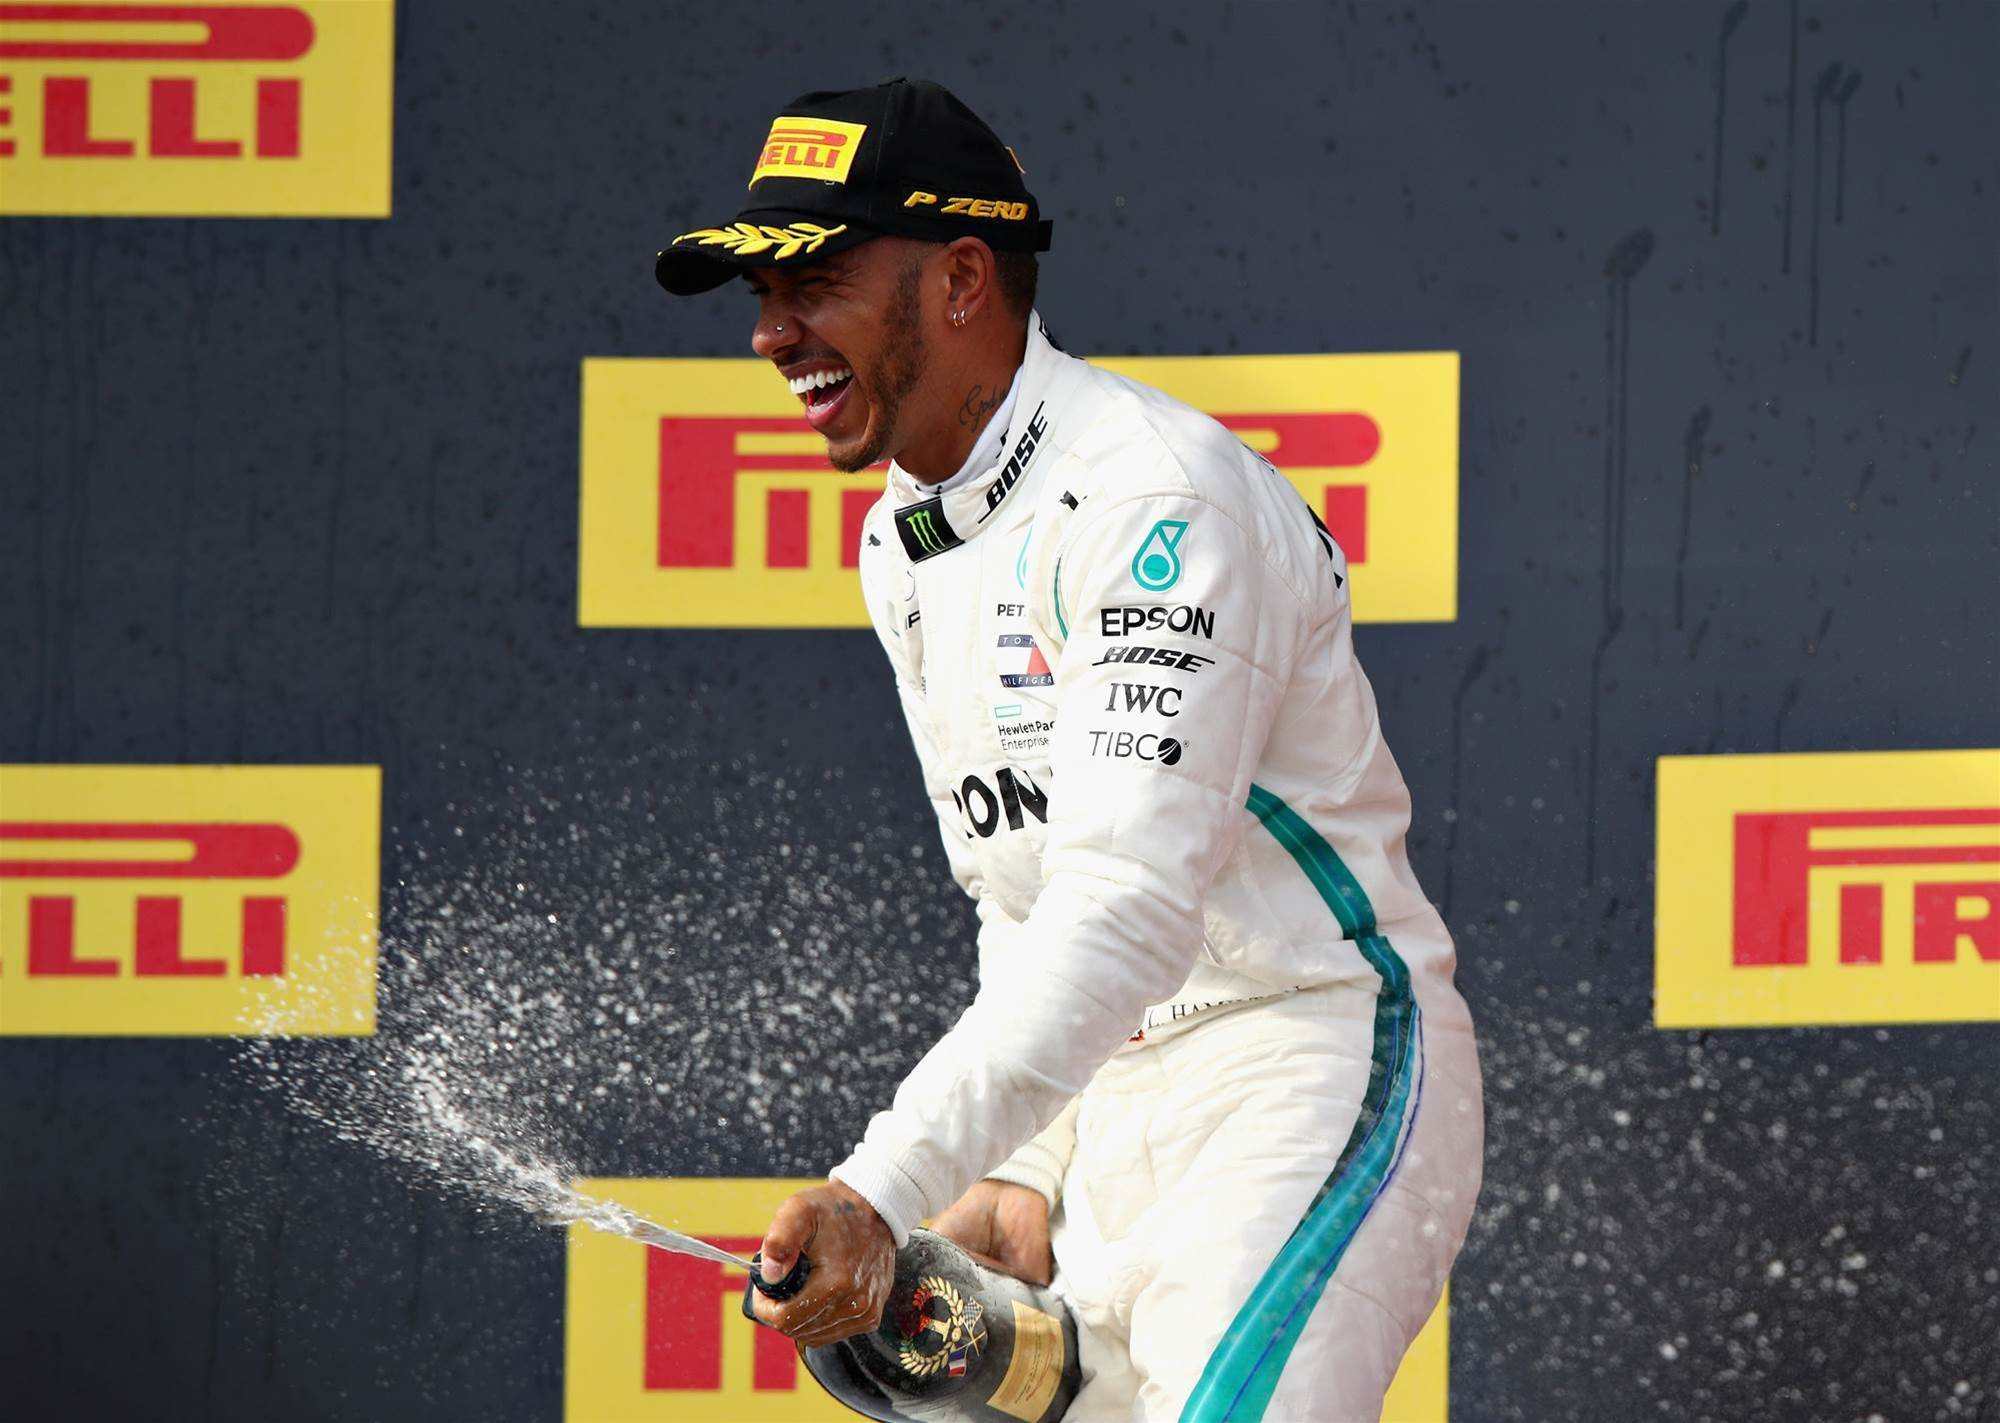 Hamilton bounces back in reborn French GP